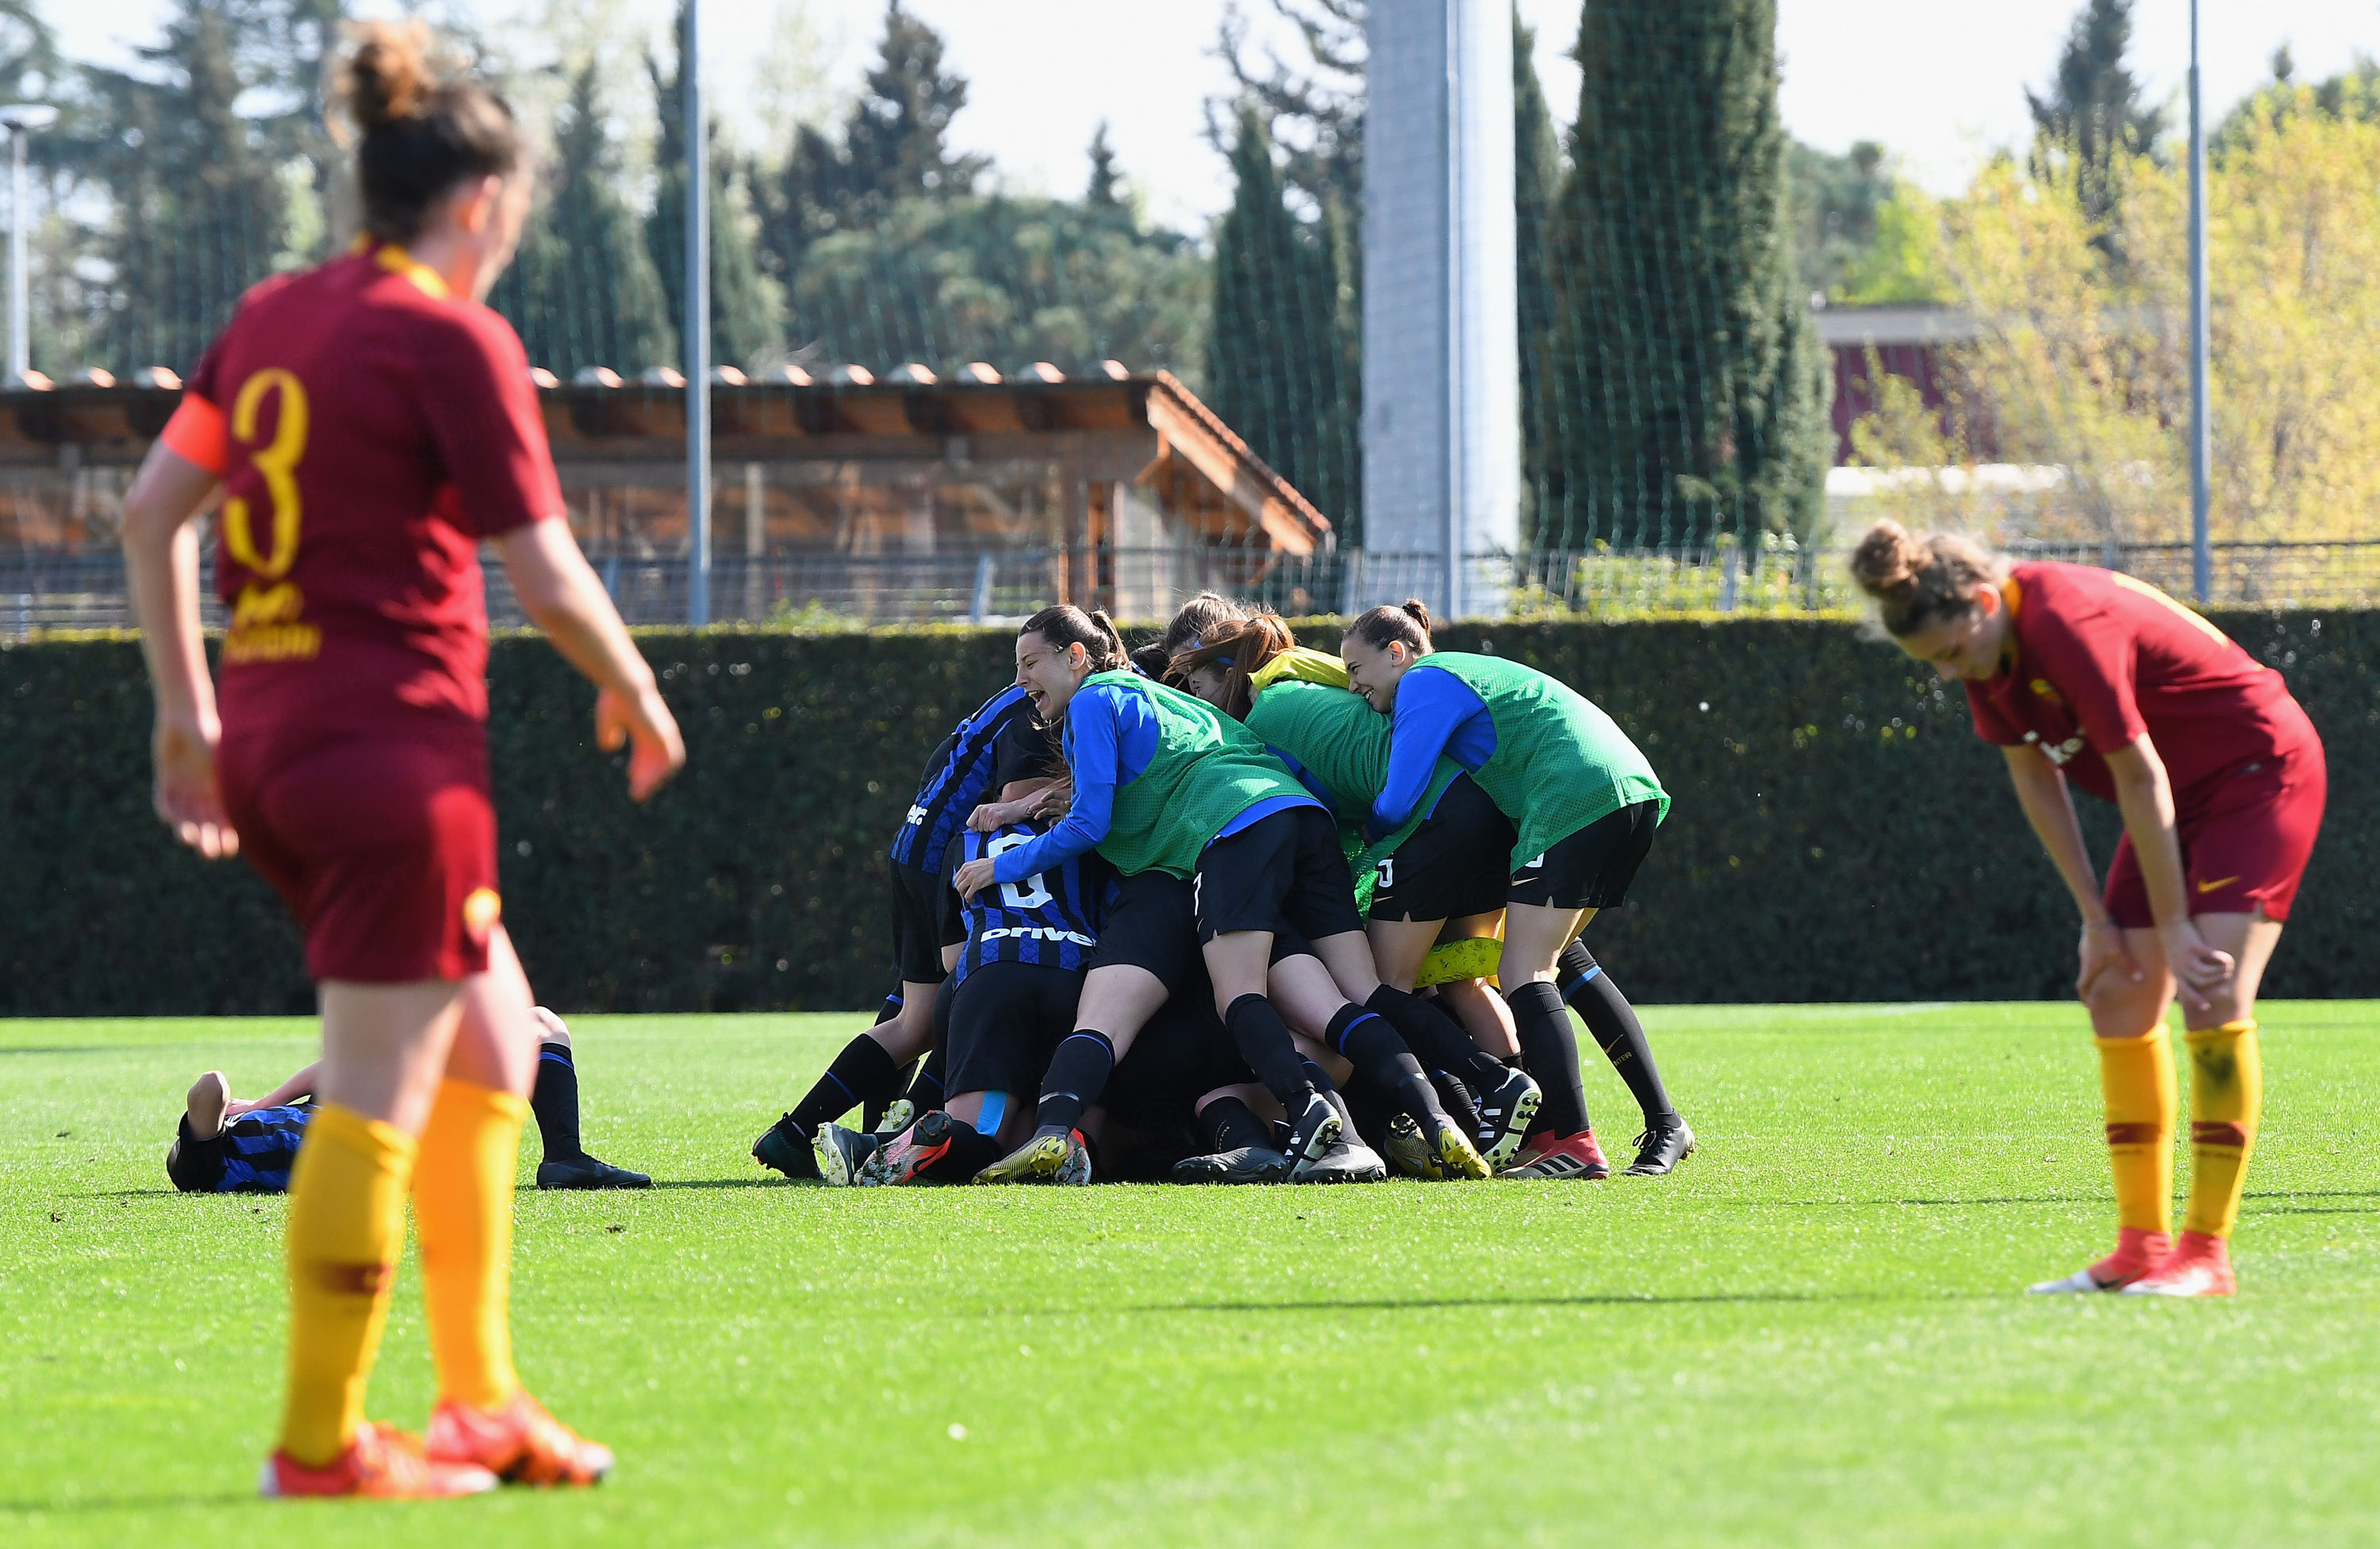 Inter beat Roma to be crowned the Women's Under-19 champions!